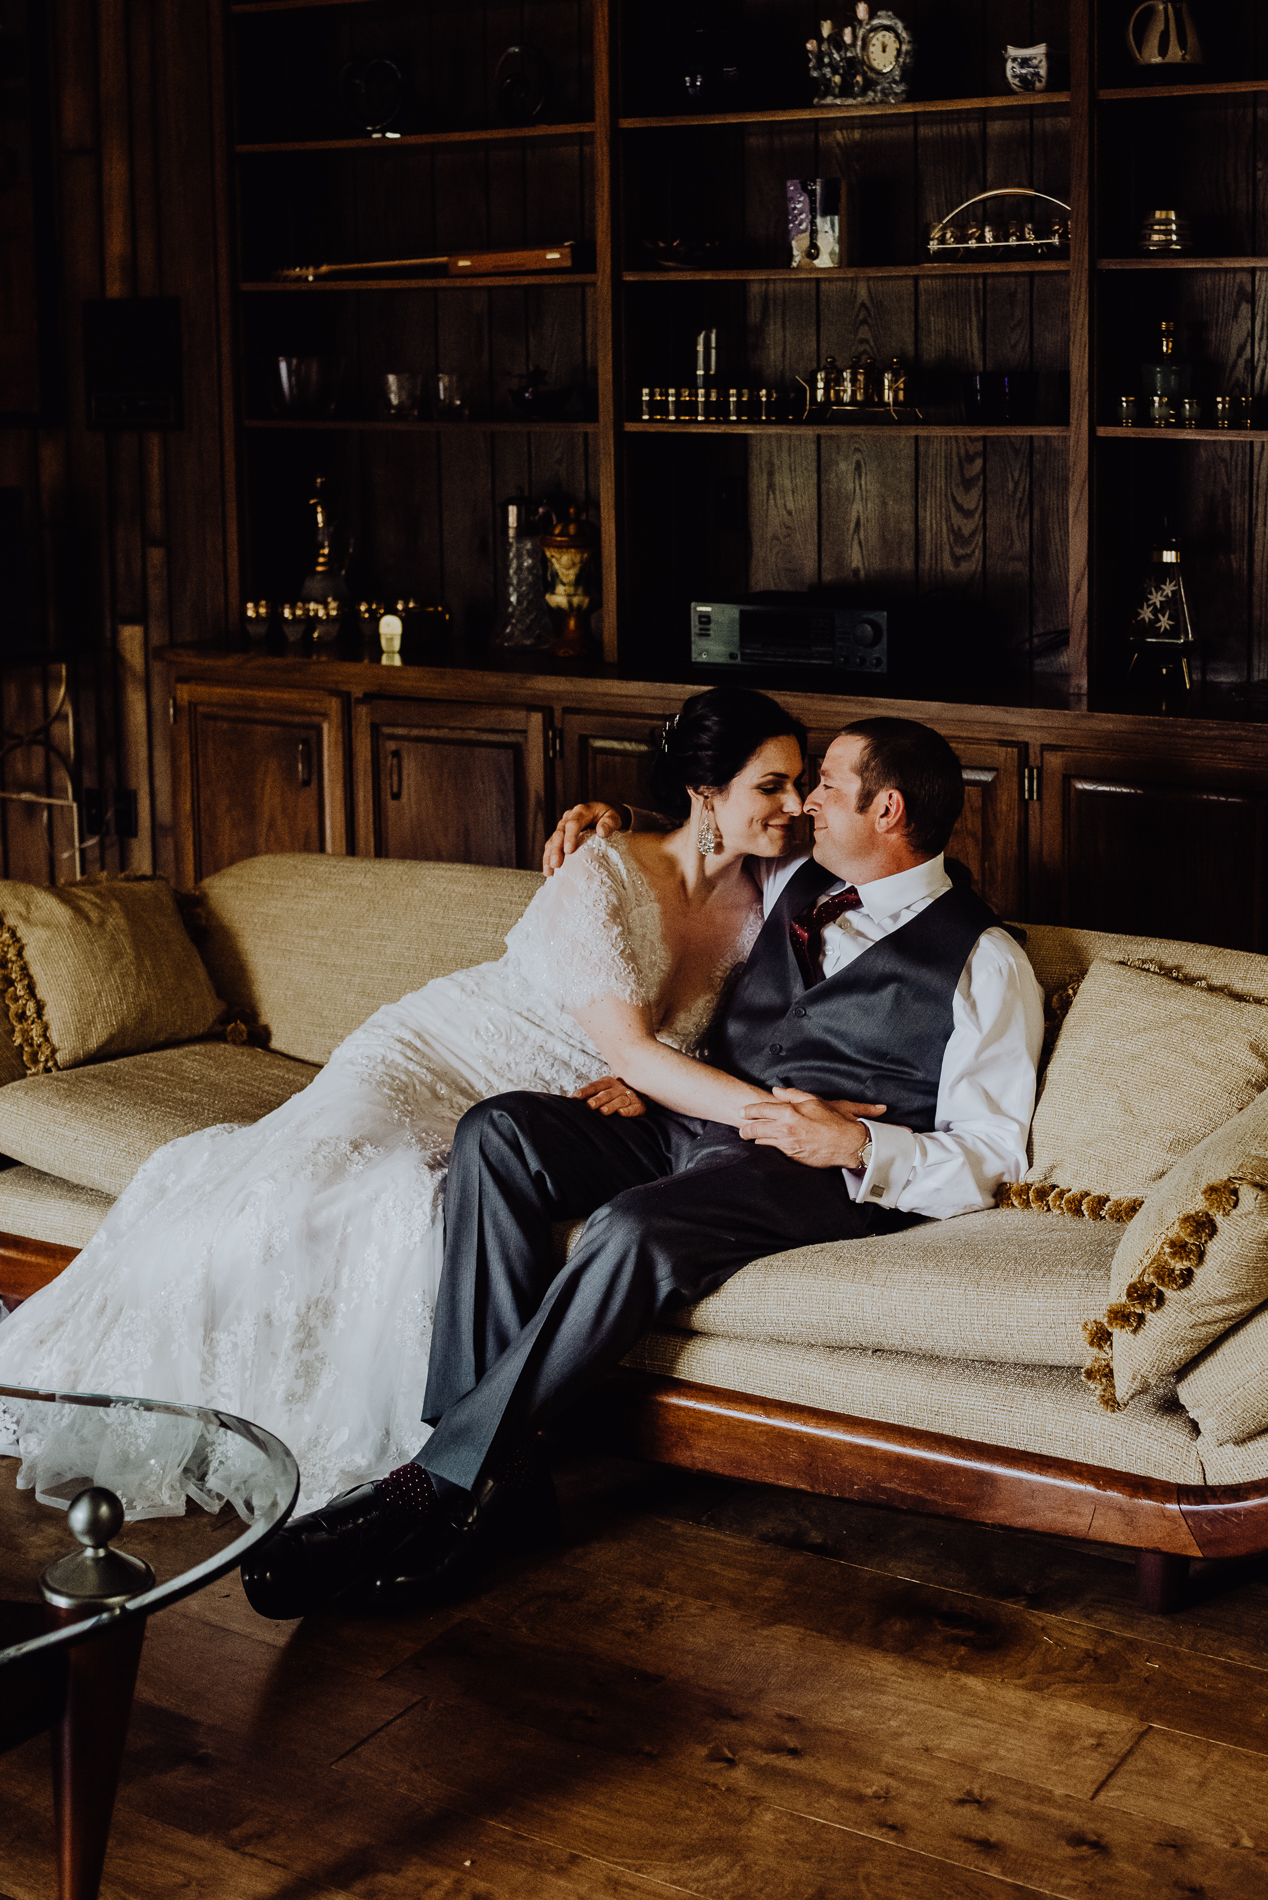 julia and dennis wedding at graceland by wilde company-99.jpg